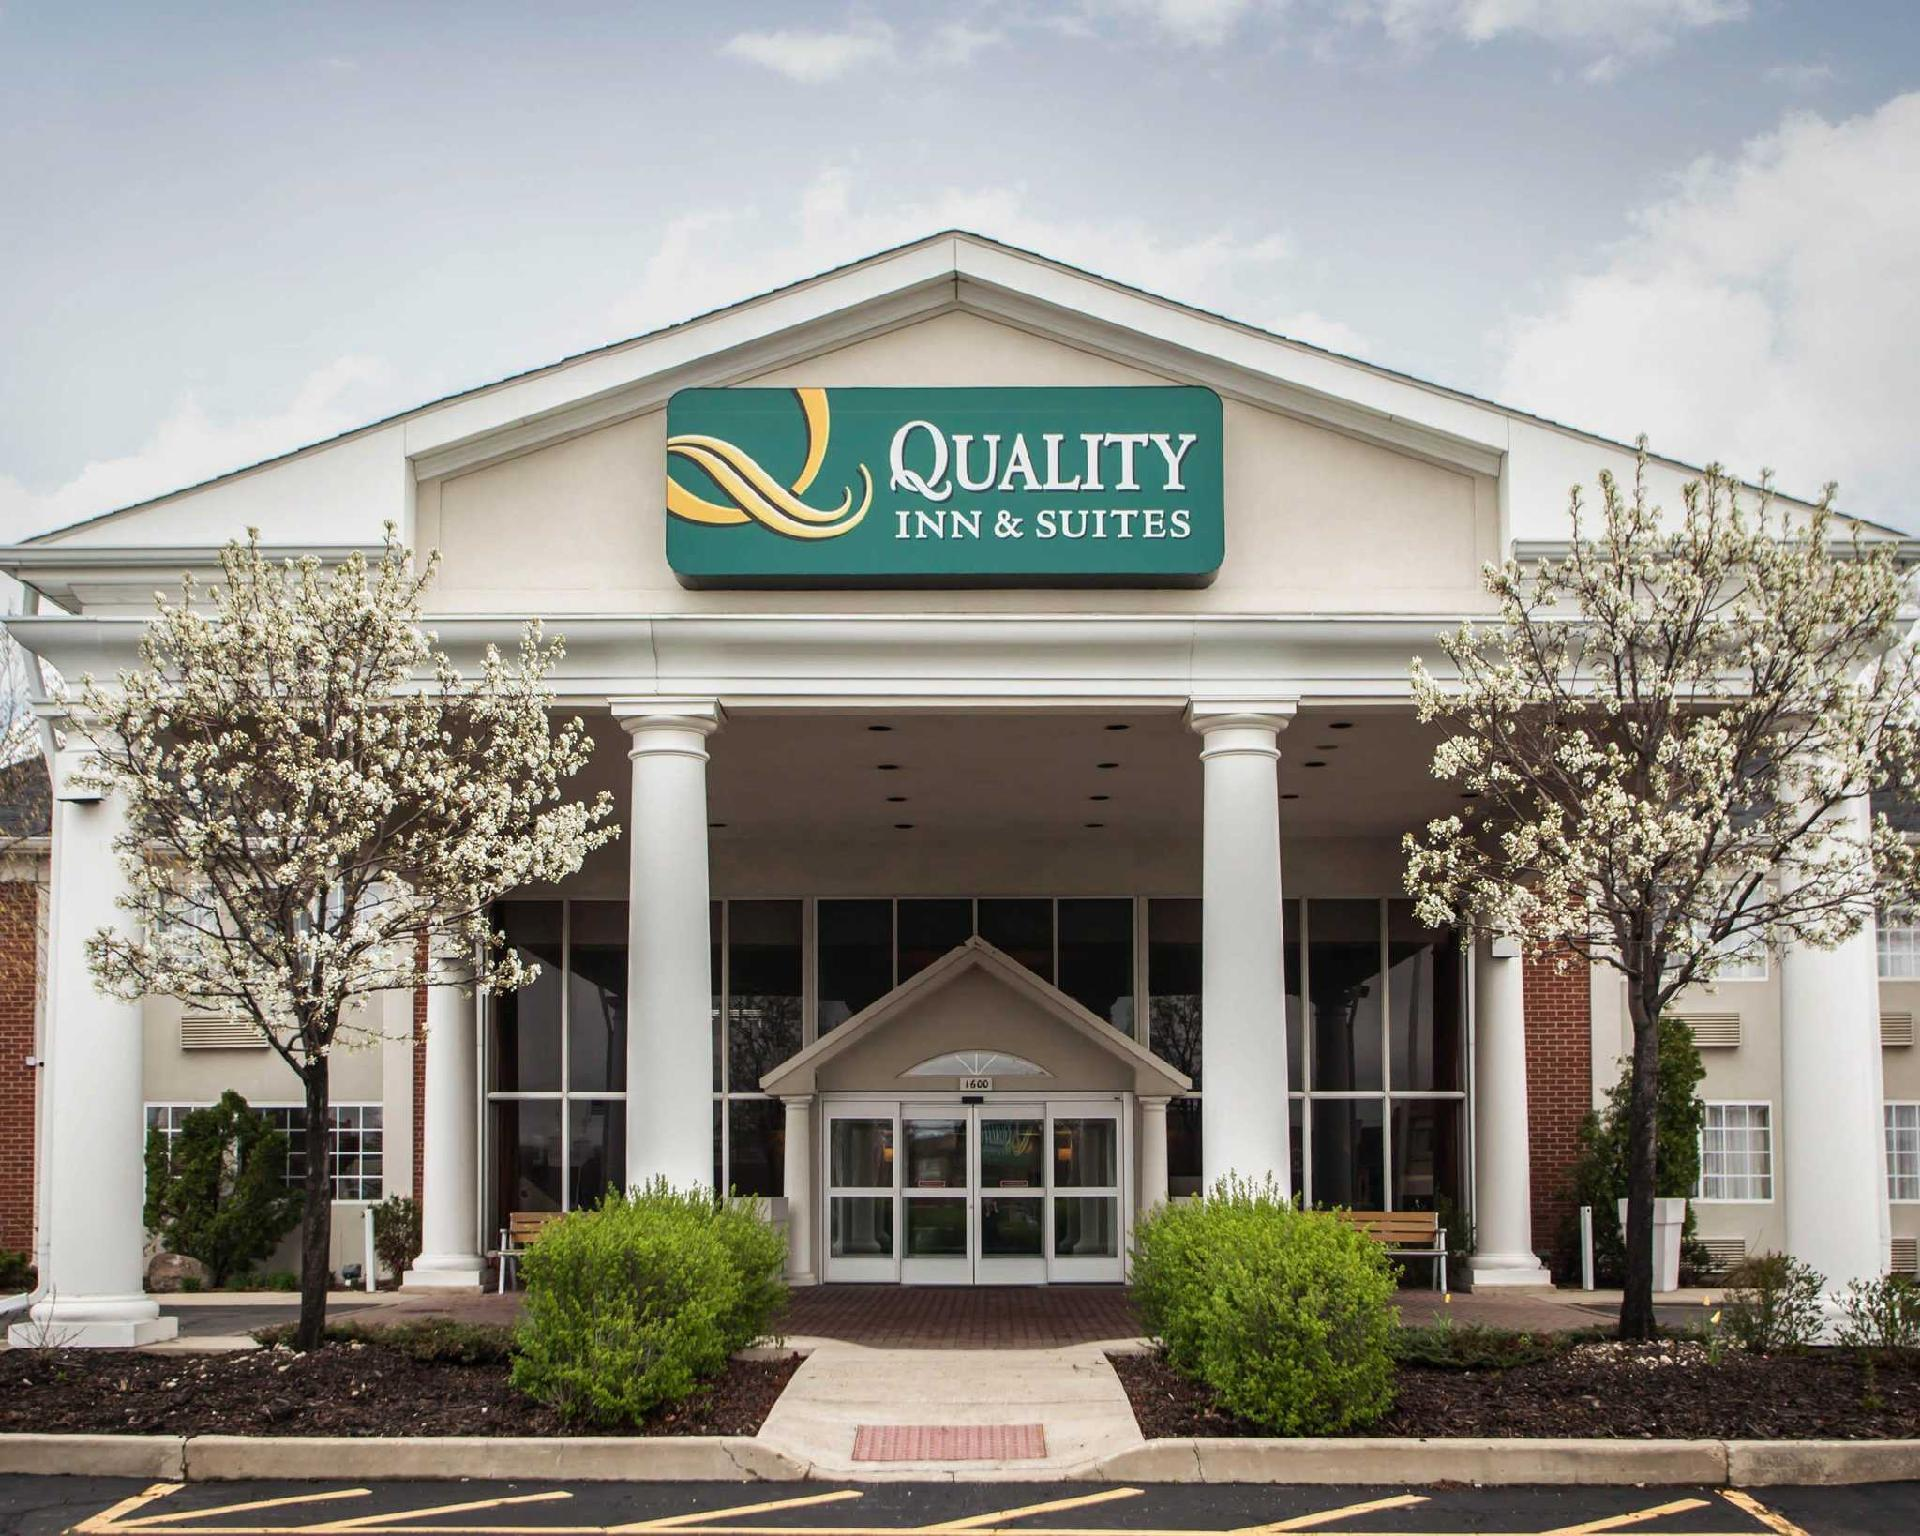 Quality Inn And Suites St Charles  West Chicago